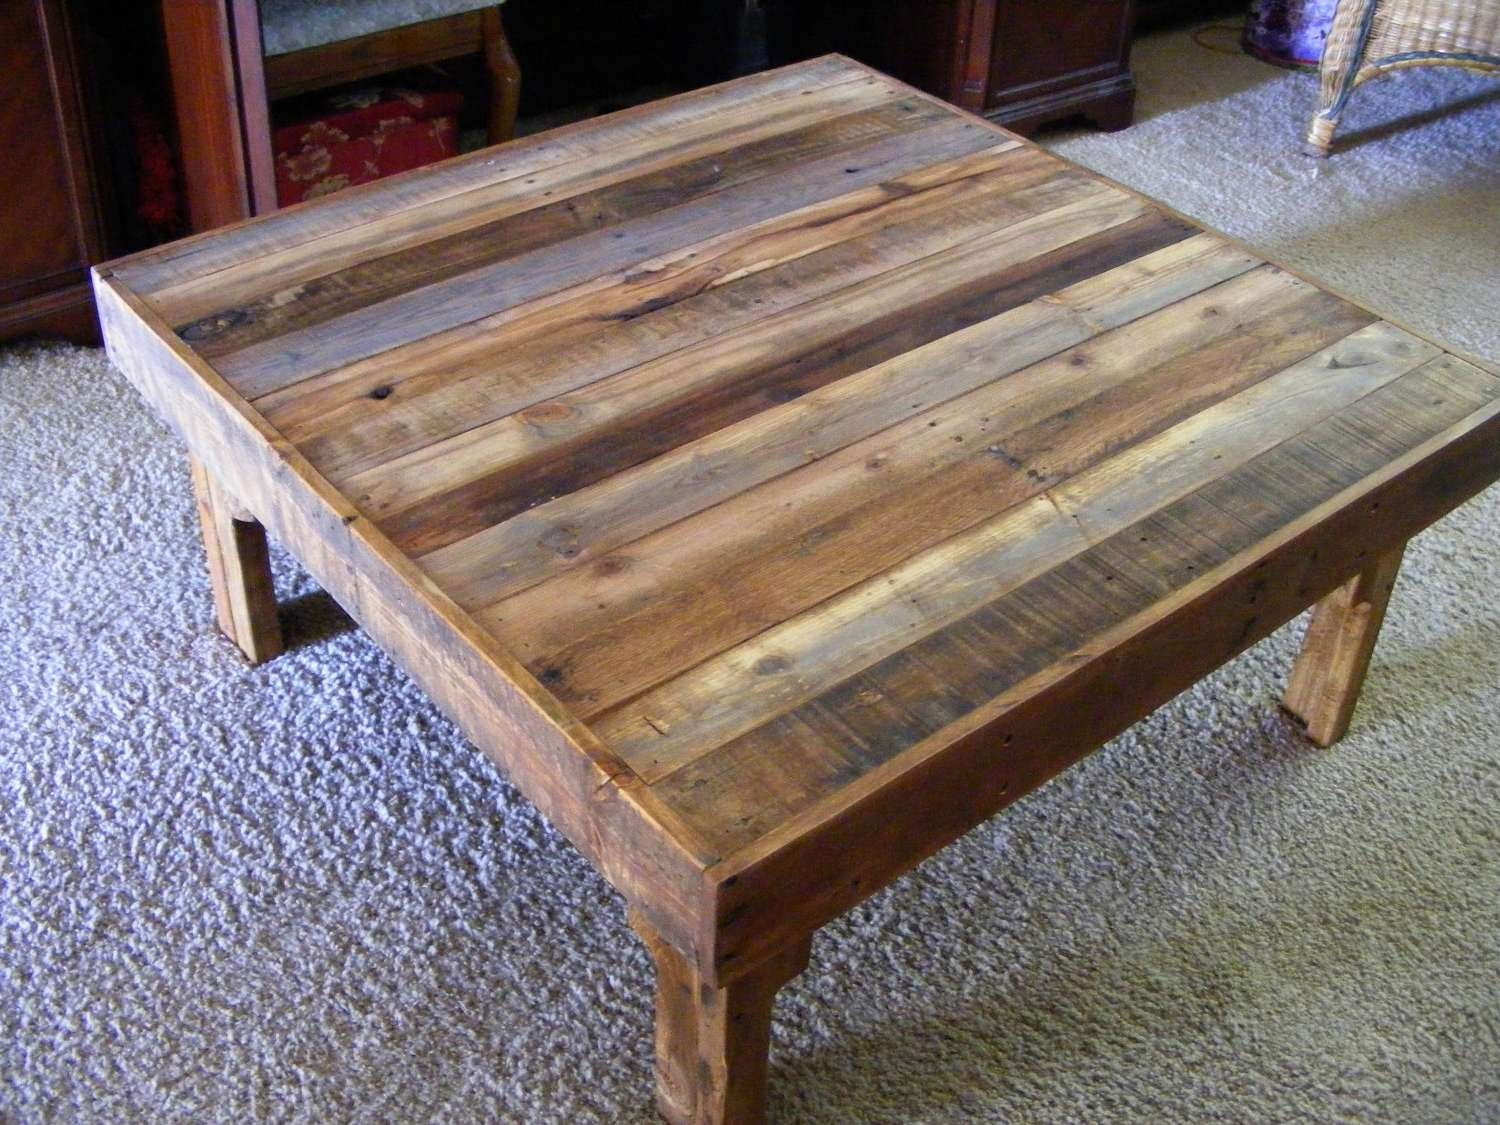 Preferred Rustic Coffee Tables Throughout Coffee Tables : Astonishing Pretty Rustic Coffee Tables Wood Table (View 12 of 20)